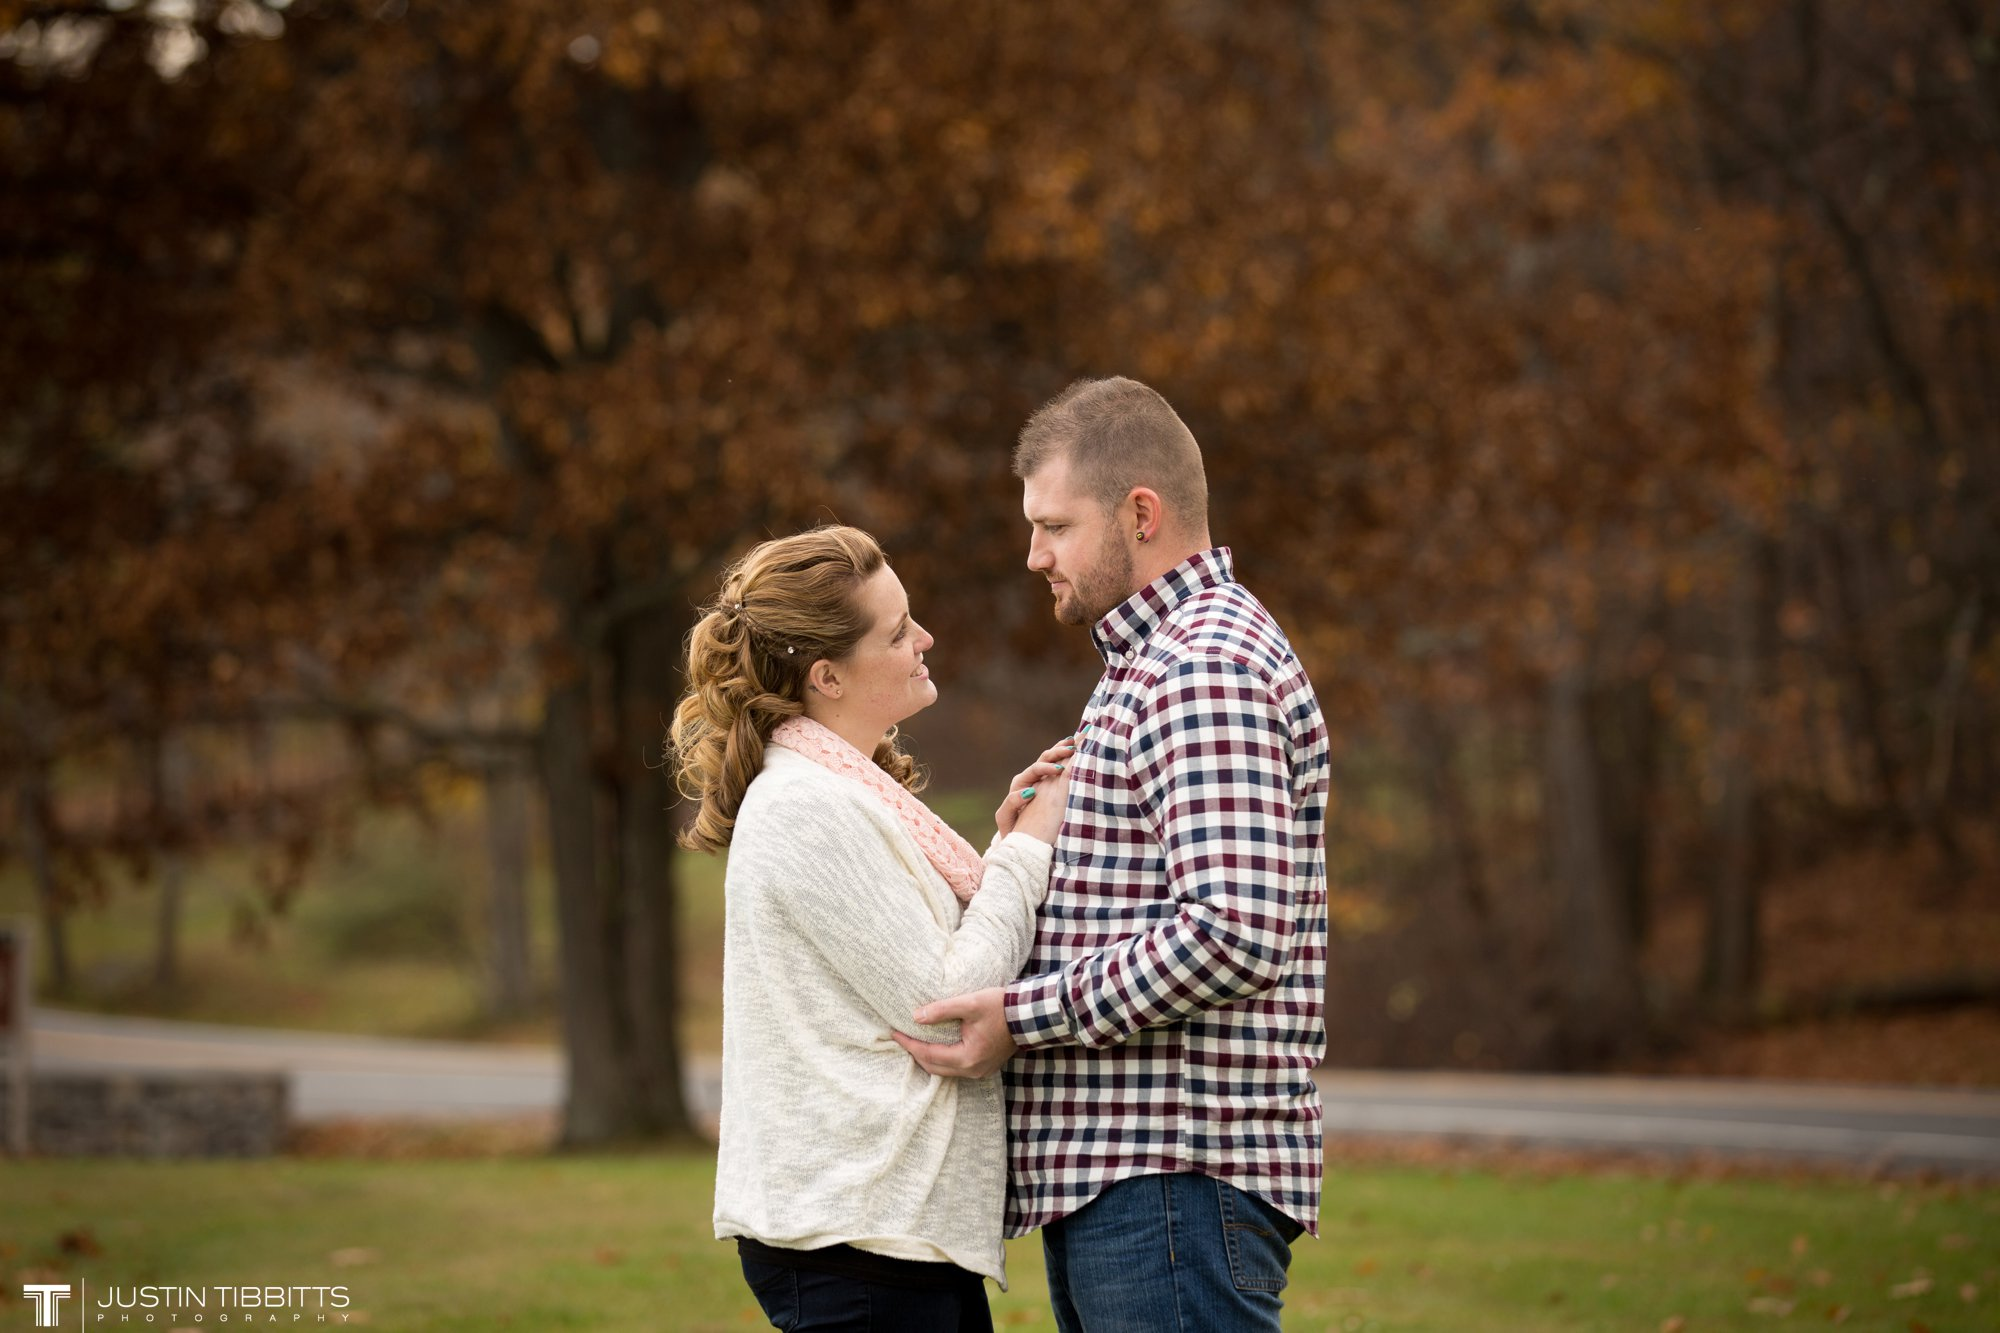 Justin Tibbitts Photography Ashlee and Steves Thatcher Park, New York Engagement Shoot-116